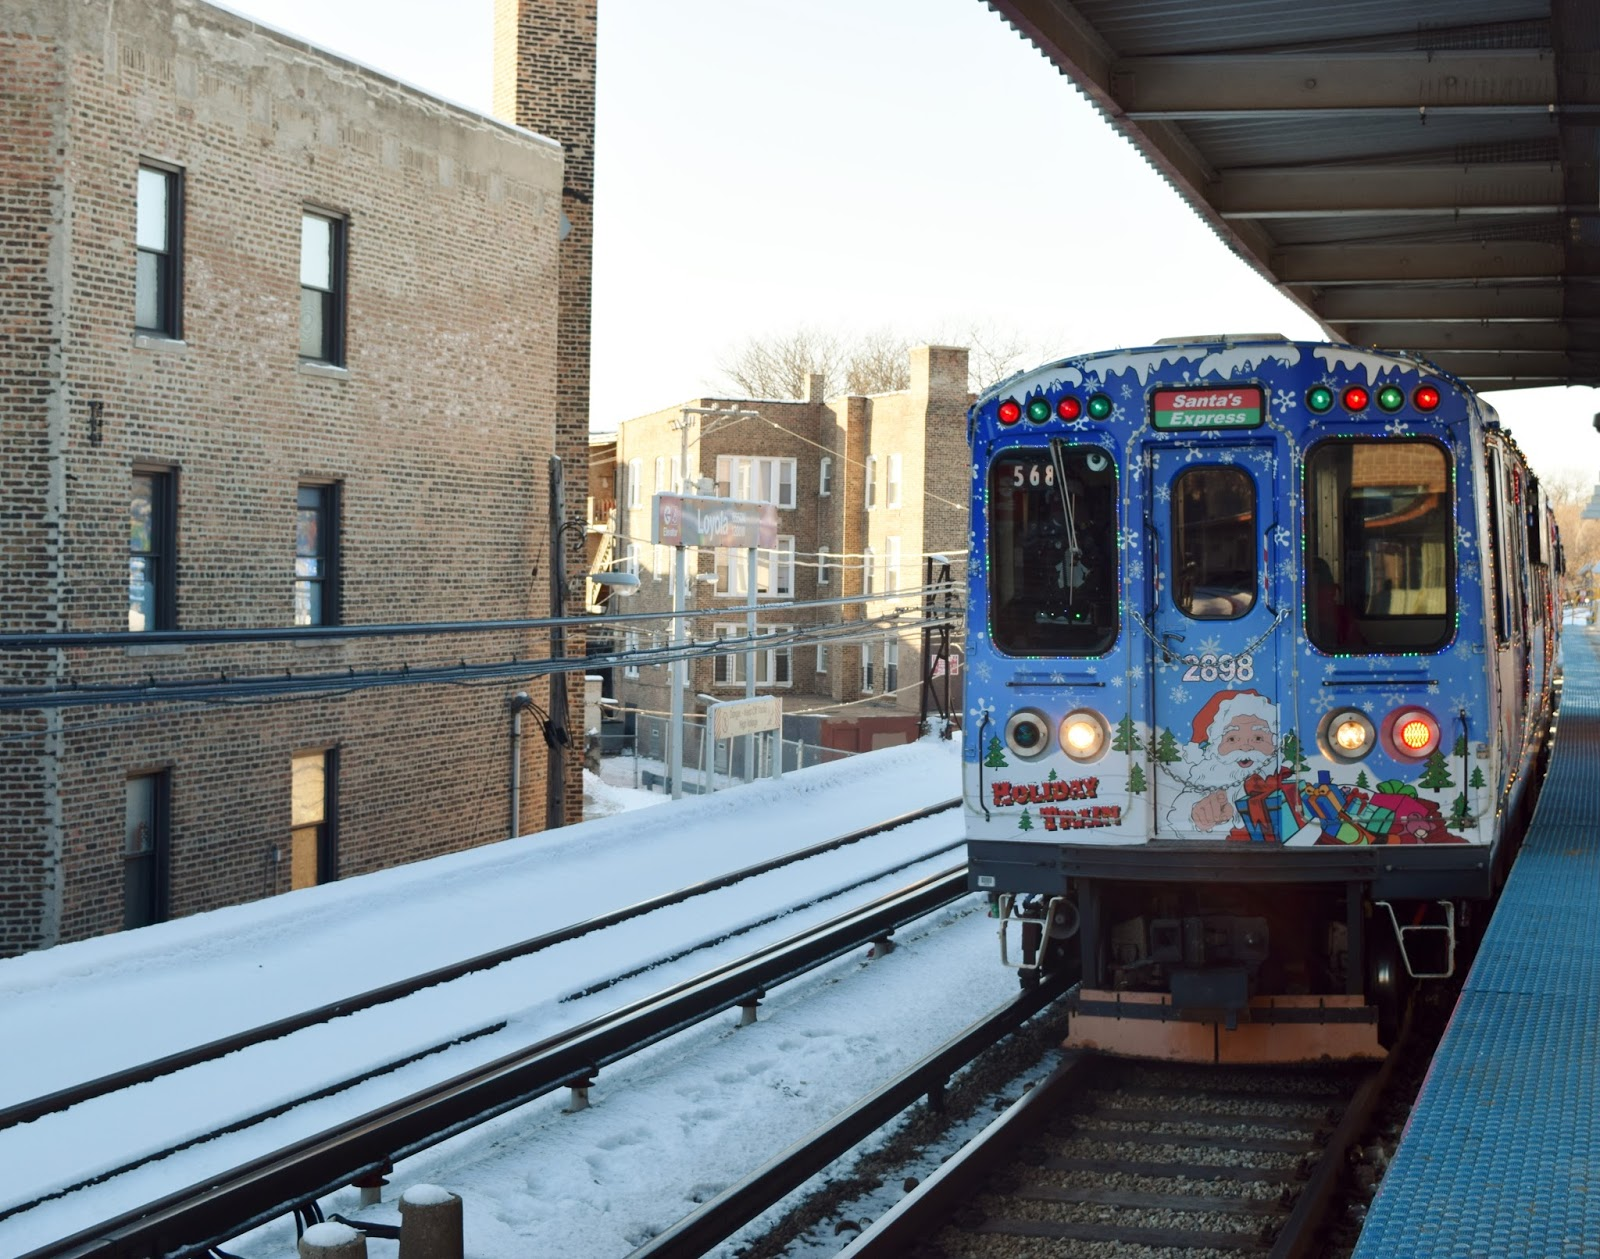 finally after about eight trains passed the holiday train arrived to much cheering from everyone on the train platform - Cta Christmas Train 2014